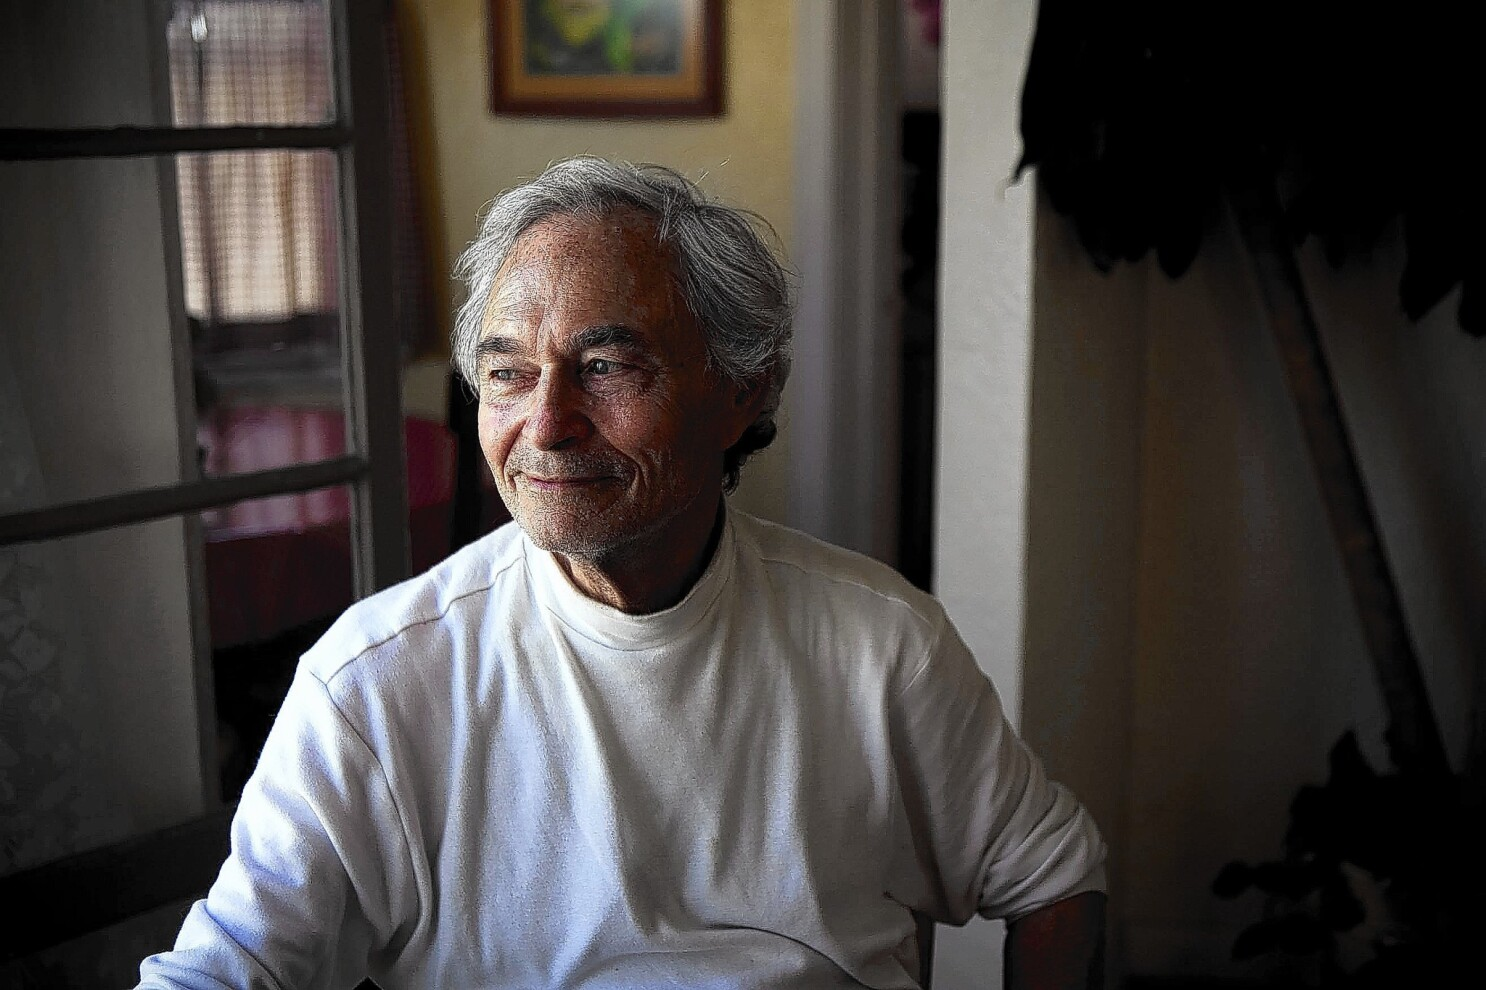 Great Read: Rising rent leads some seniors back to living